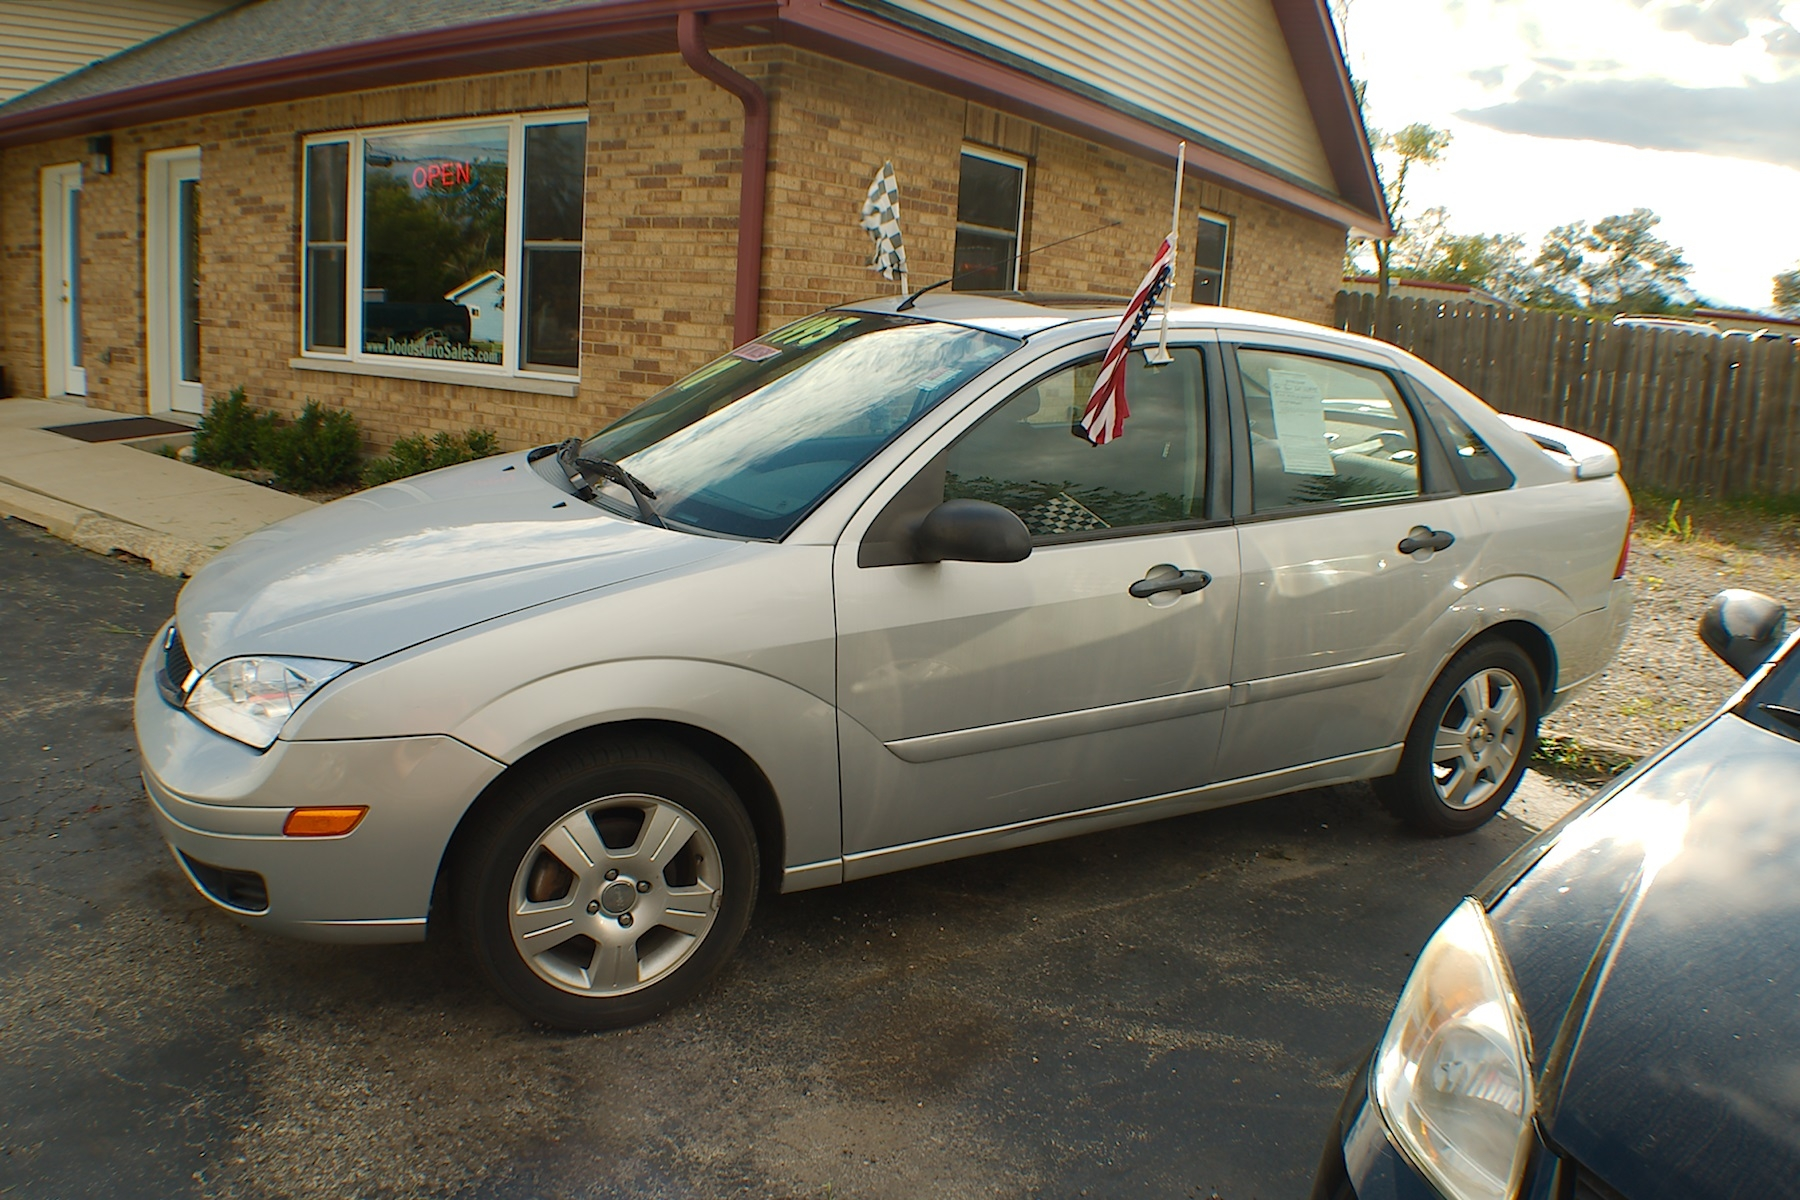 2007 Ford Focus SES Silver Sedan Used Car Sale Antioch Zion Waukegan Lake County Illinois